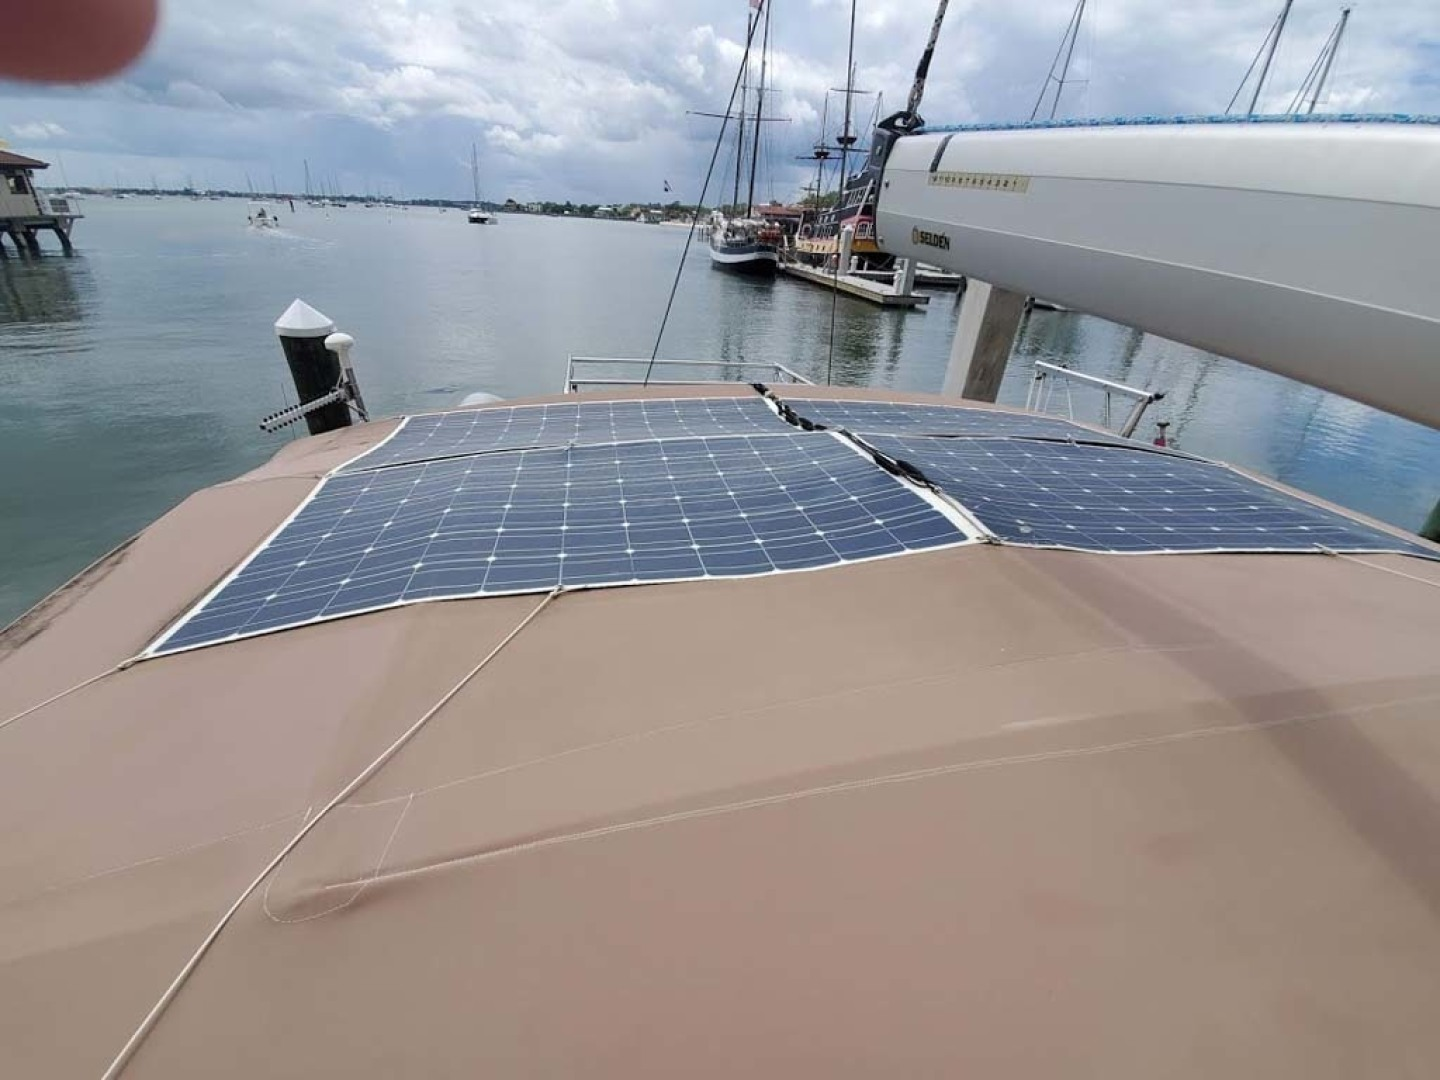 Bavaria-49 2003-BLUE CLOUD LADY Jacksonville-Florida-United States-Solar Panels-1412457 | Thumbnail